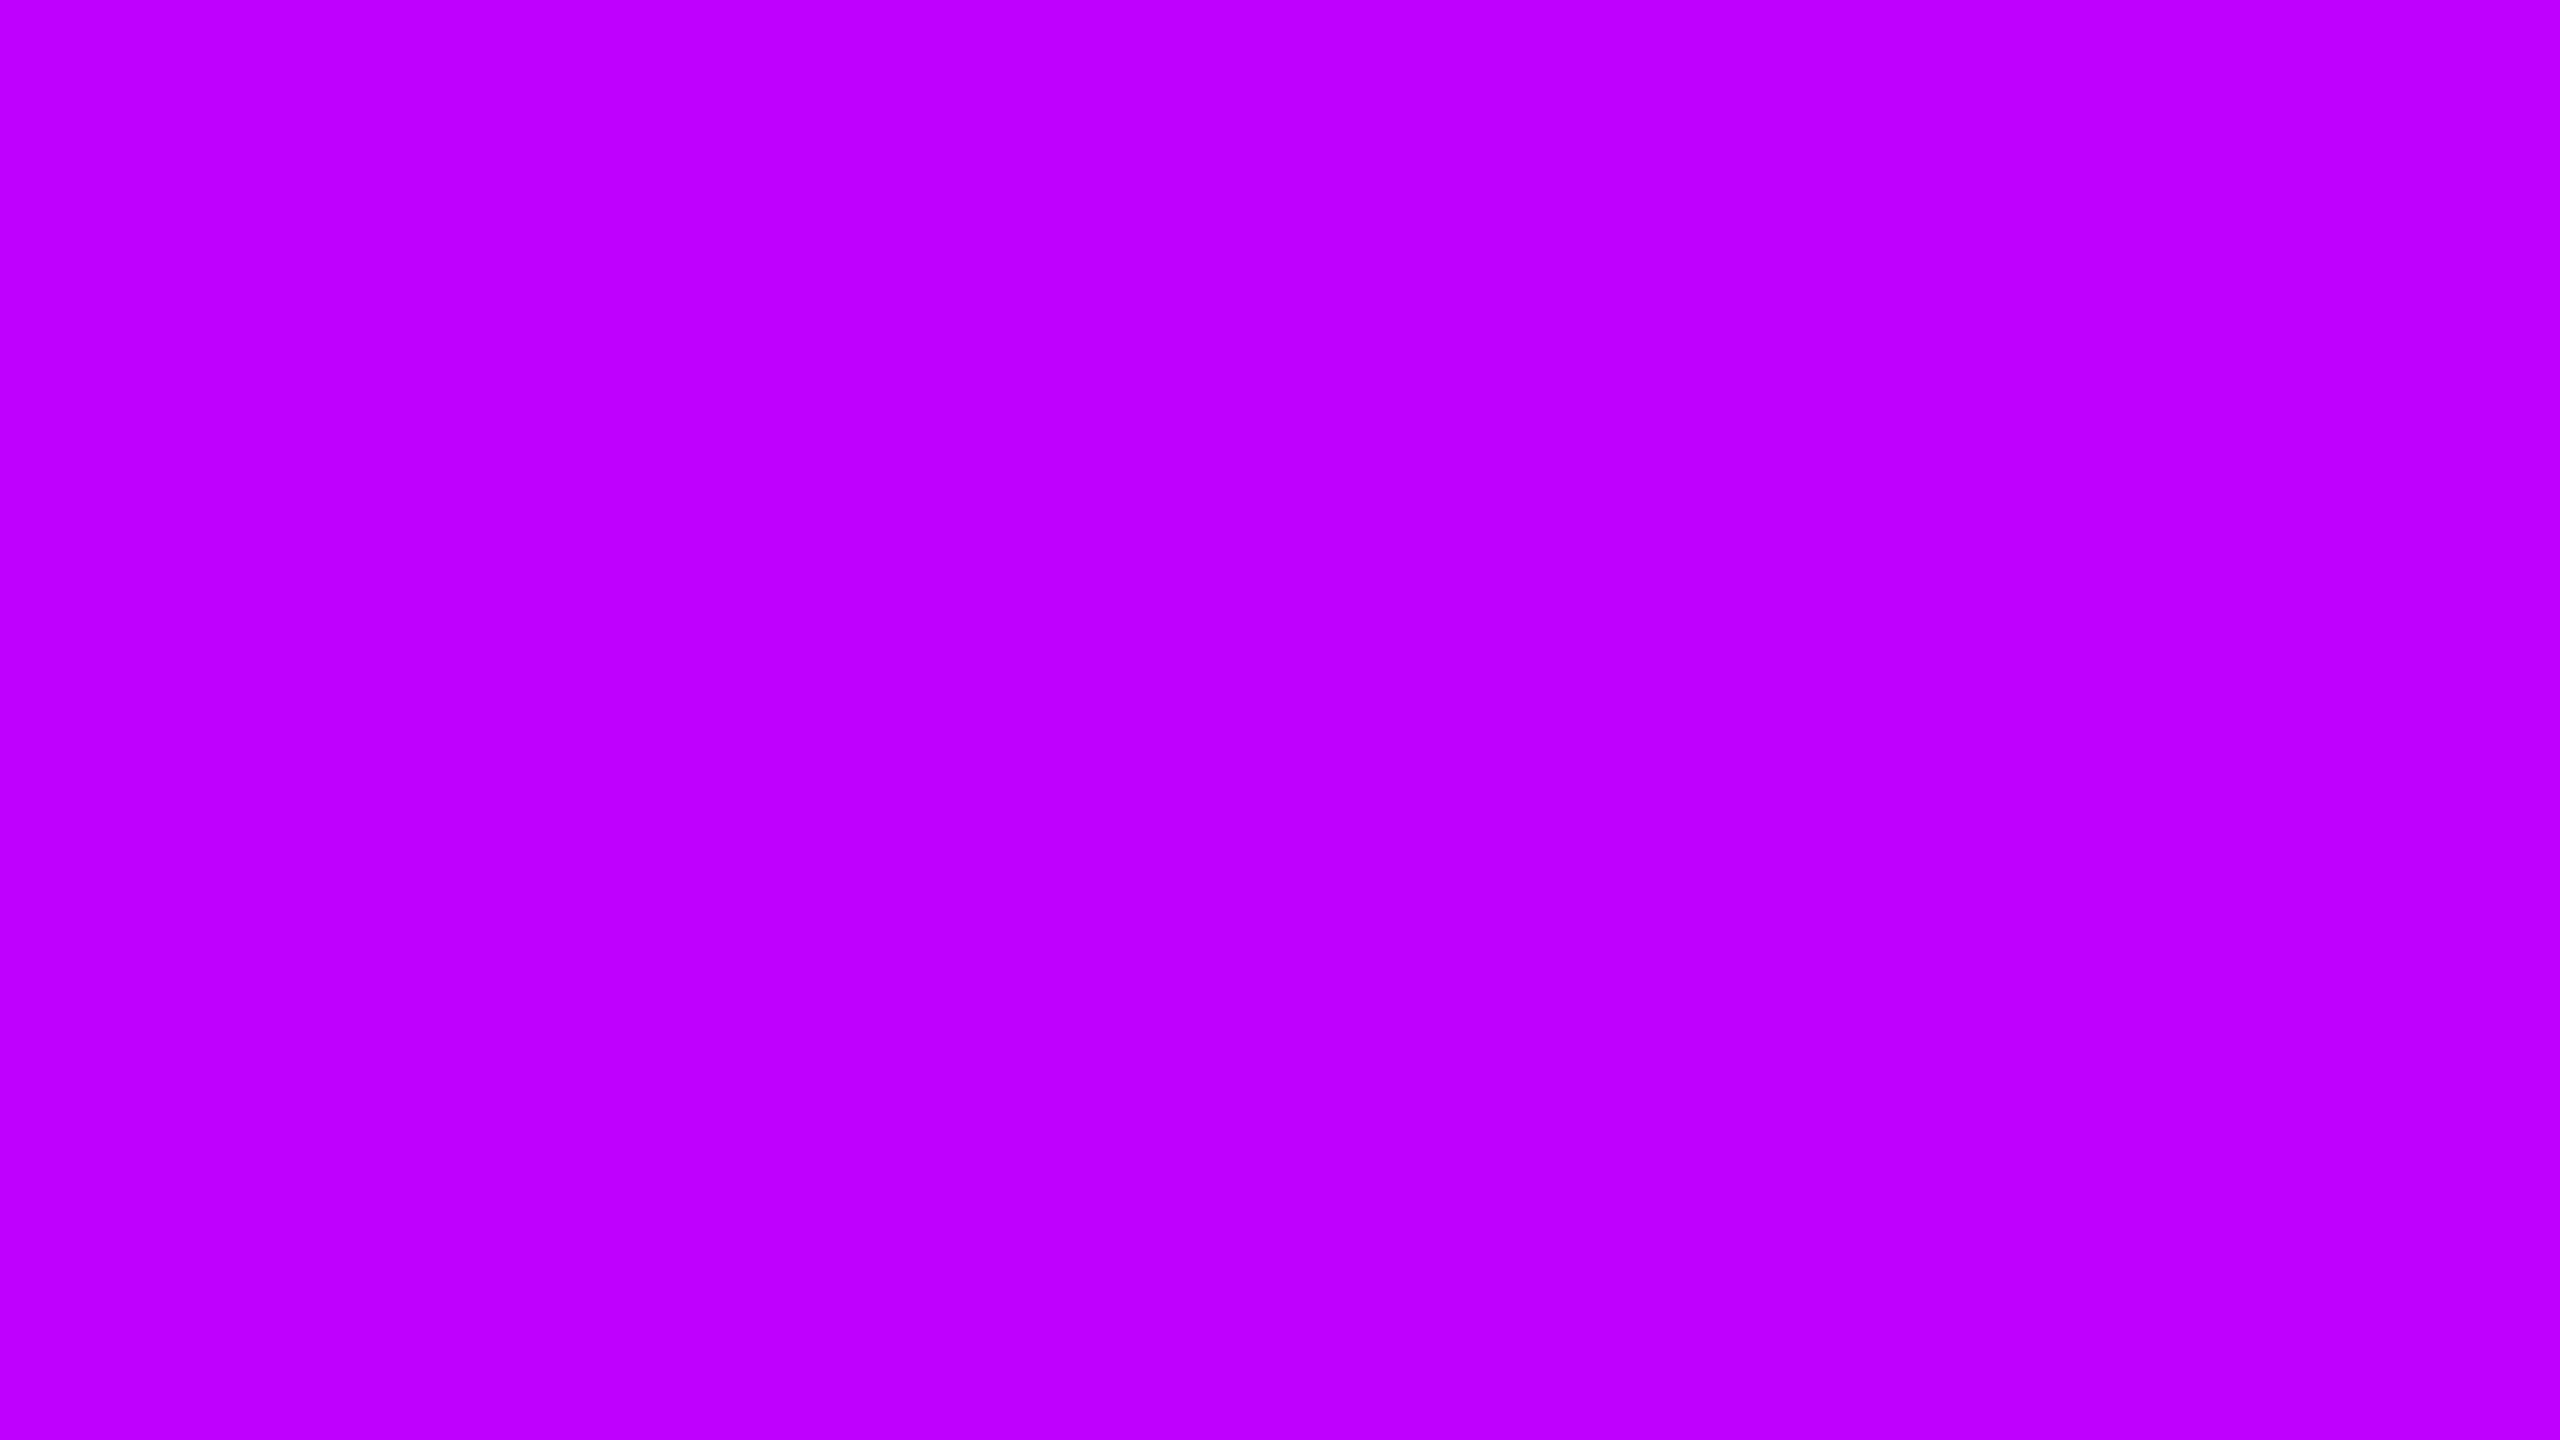 Solid Purple Wallpaper Solid color backgrounds, Paint